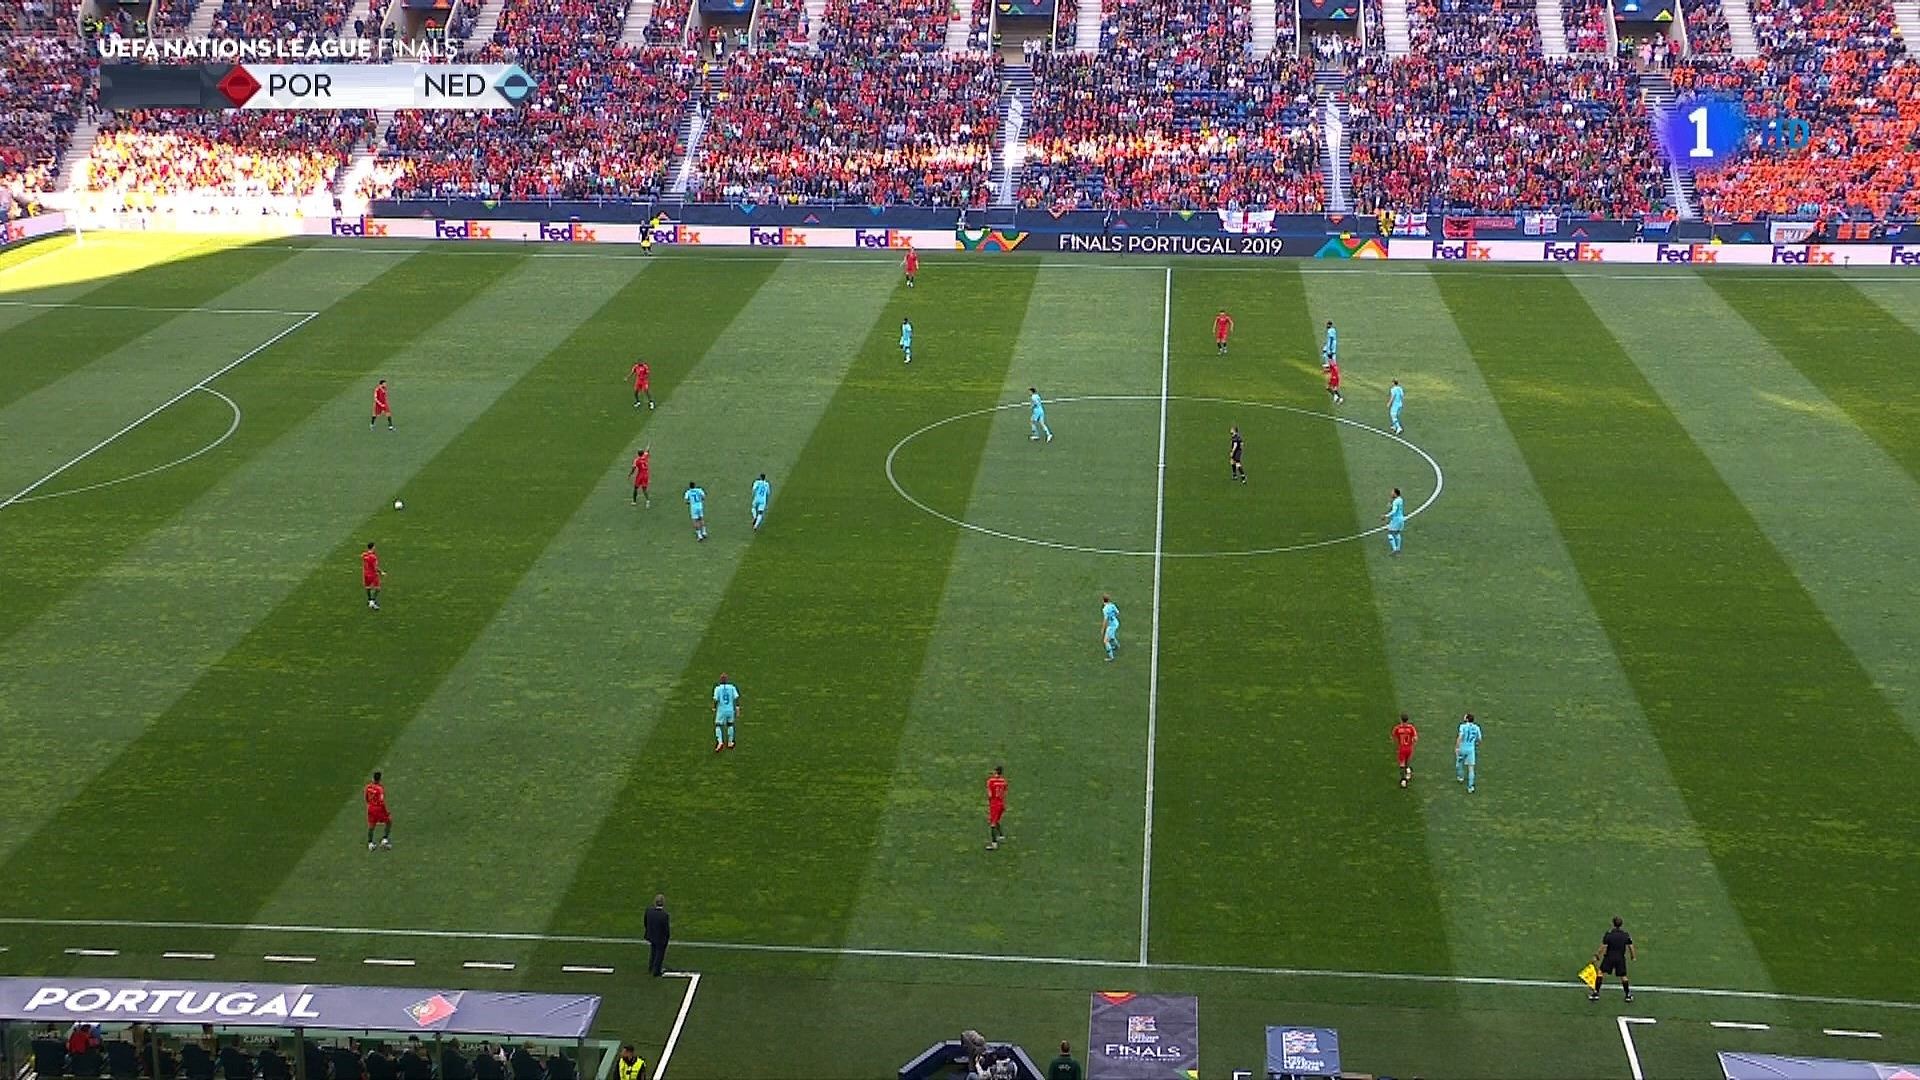 UEFA Nations League 2018/2019 - Final - Portugal Vs. Holanda (1080i) (Castellano) 9f1cdf0aee4bf692dc49104cd4362dddo